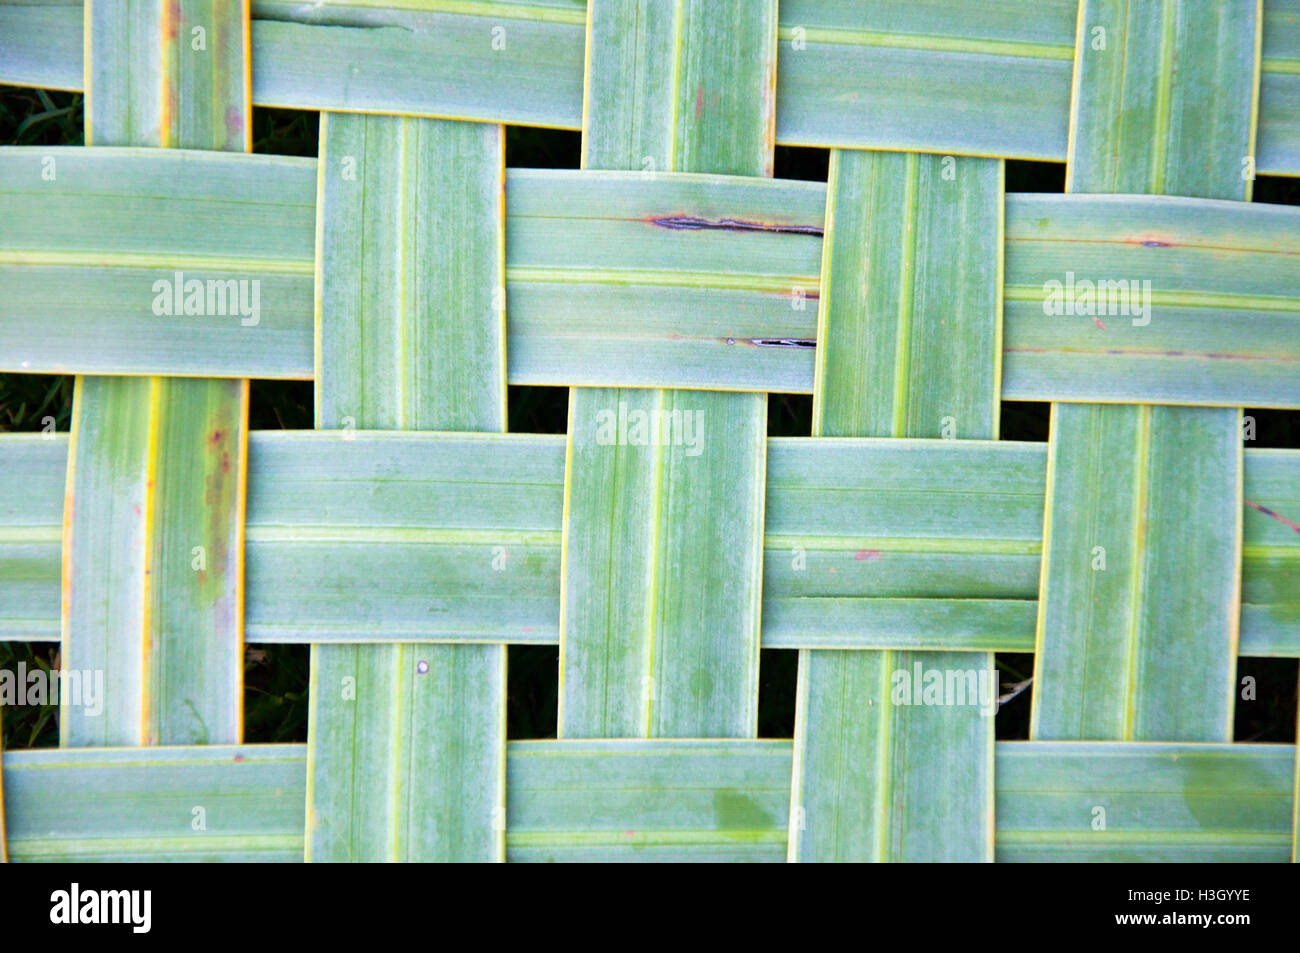 Green tropical palm tree branch leaves woven, full frame nature background. - Stock Image